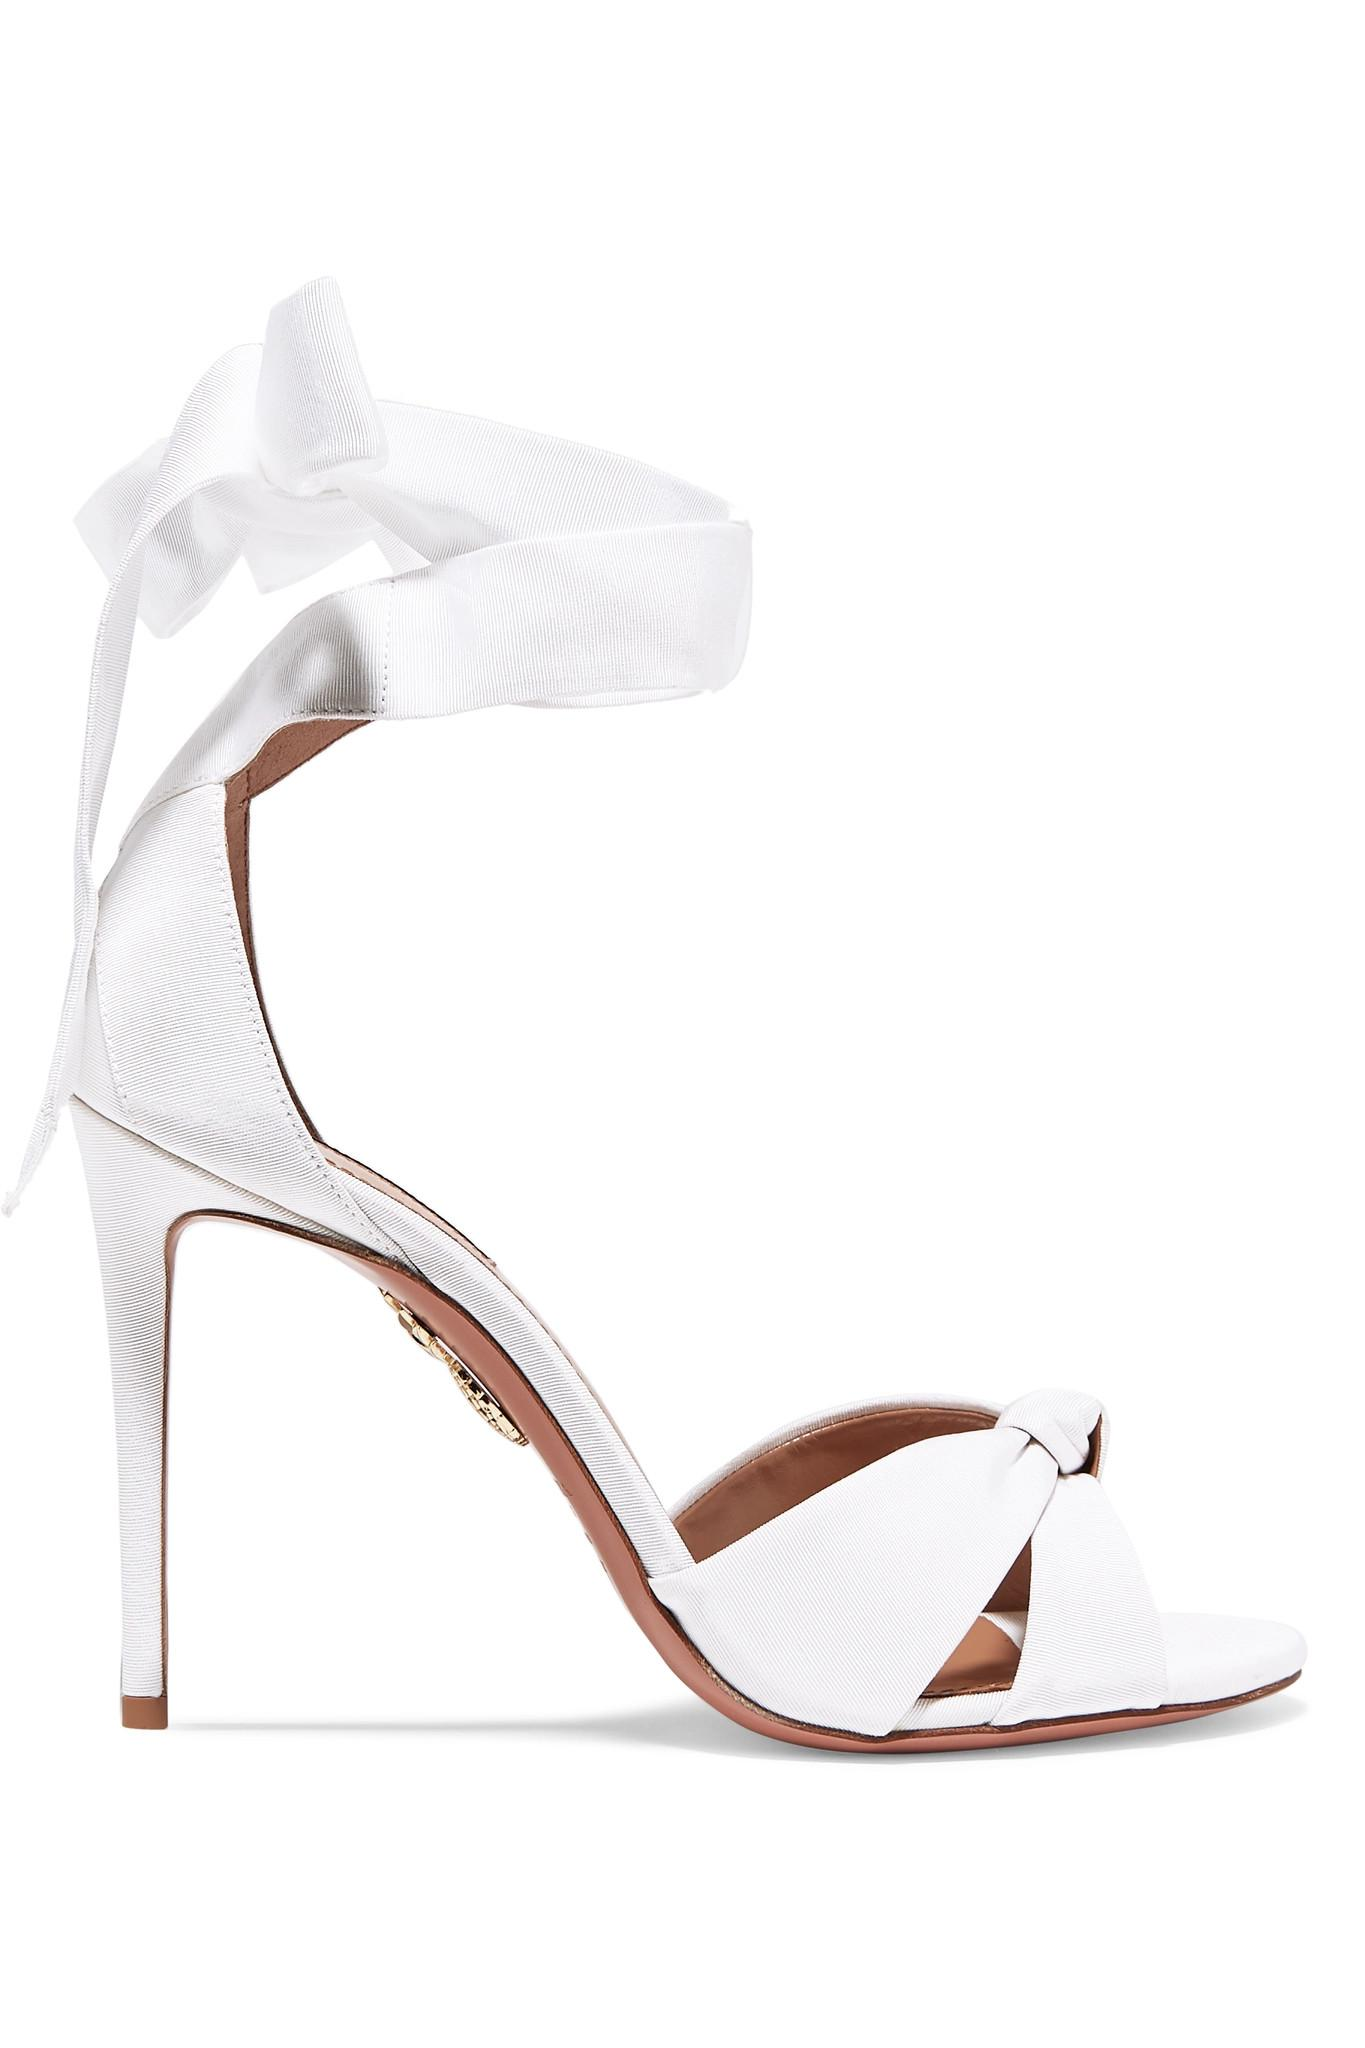 db3ad055ee0c Aquazzura All Tied Up Grosgrain Sandals in White - Lyst